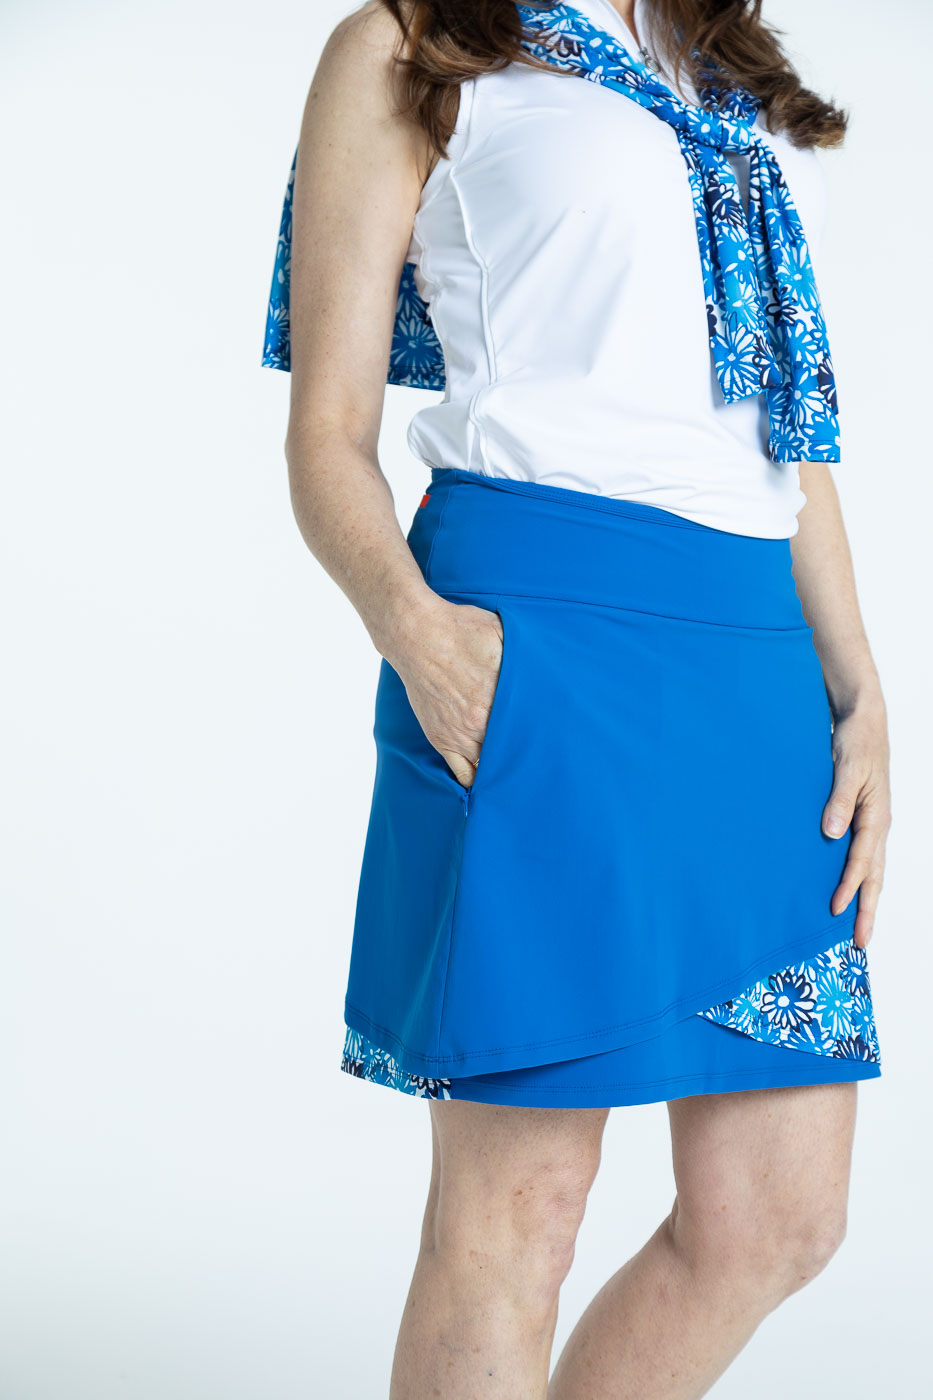 Side view of woman wearing a blueberry blue Wrap it Up golf skort and a white/white Keep it Covered sleeveless golf top